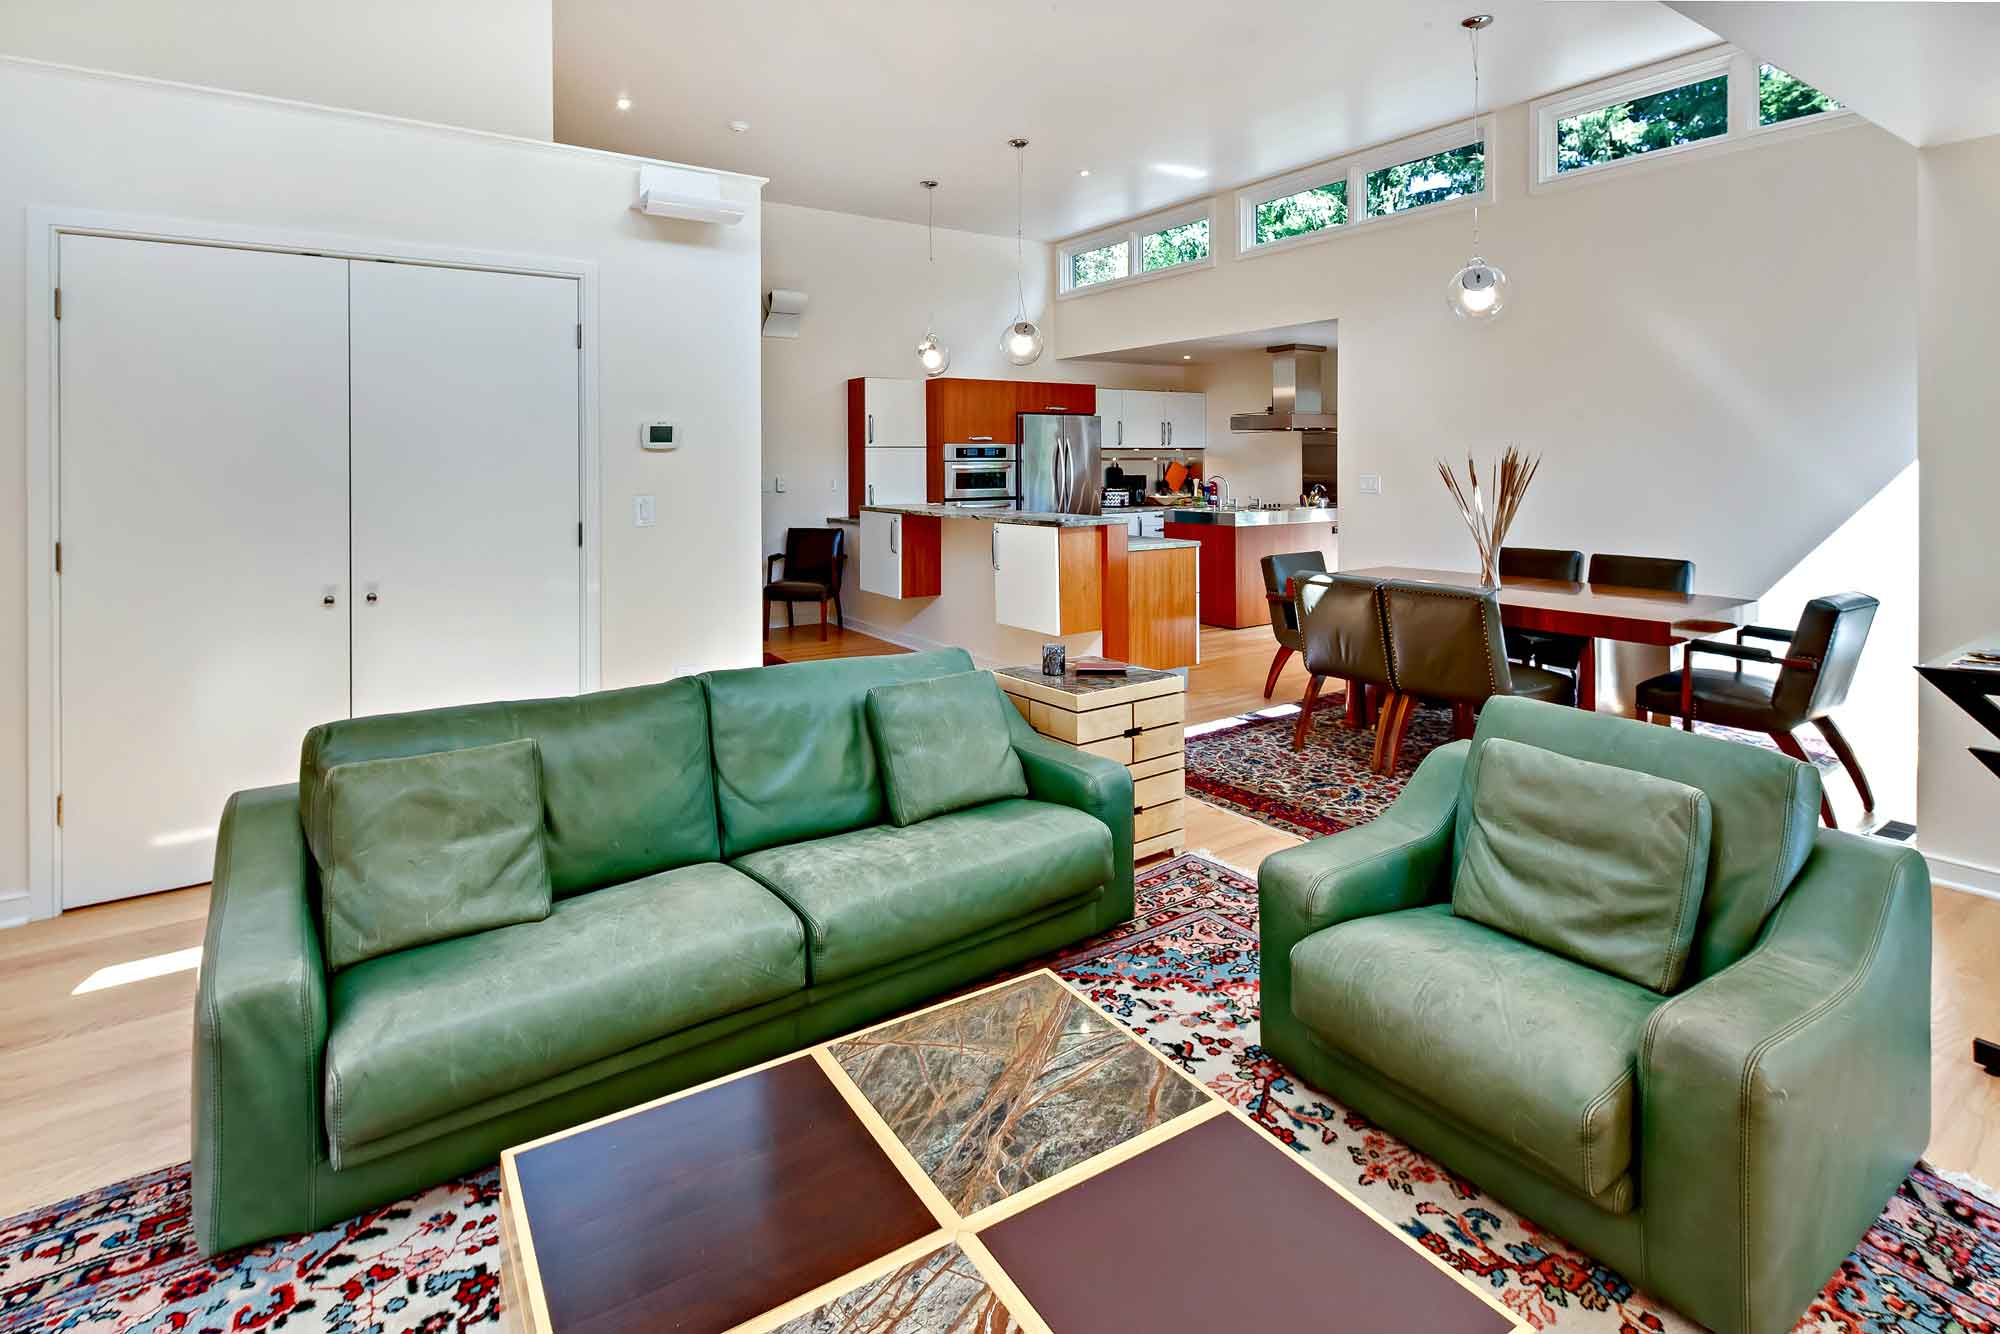 At La Maison de Verre, a striking Frank Lloyd Wright-inspired home in Princeton, New Jersey, residents and guests are accommodated in style and luxury. The home's luxurious private quarters include two master wings, two en suite bedrooms, and a 1,400-square-foot, two-bedroom apartment with a cathedral ceiling and all of the same high-end finishes as the main residence.